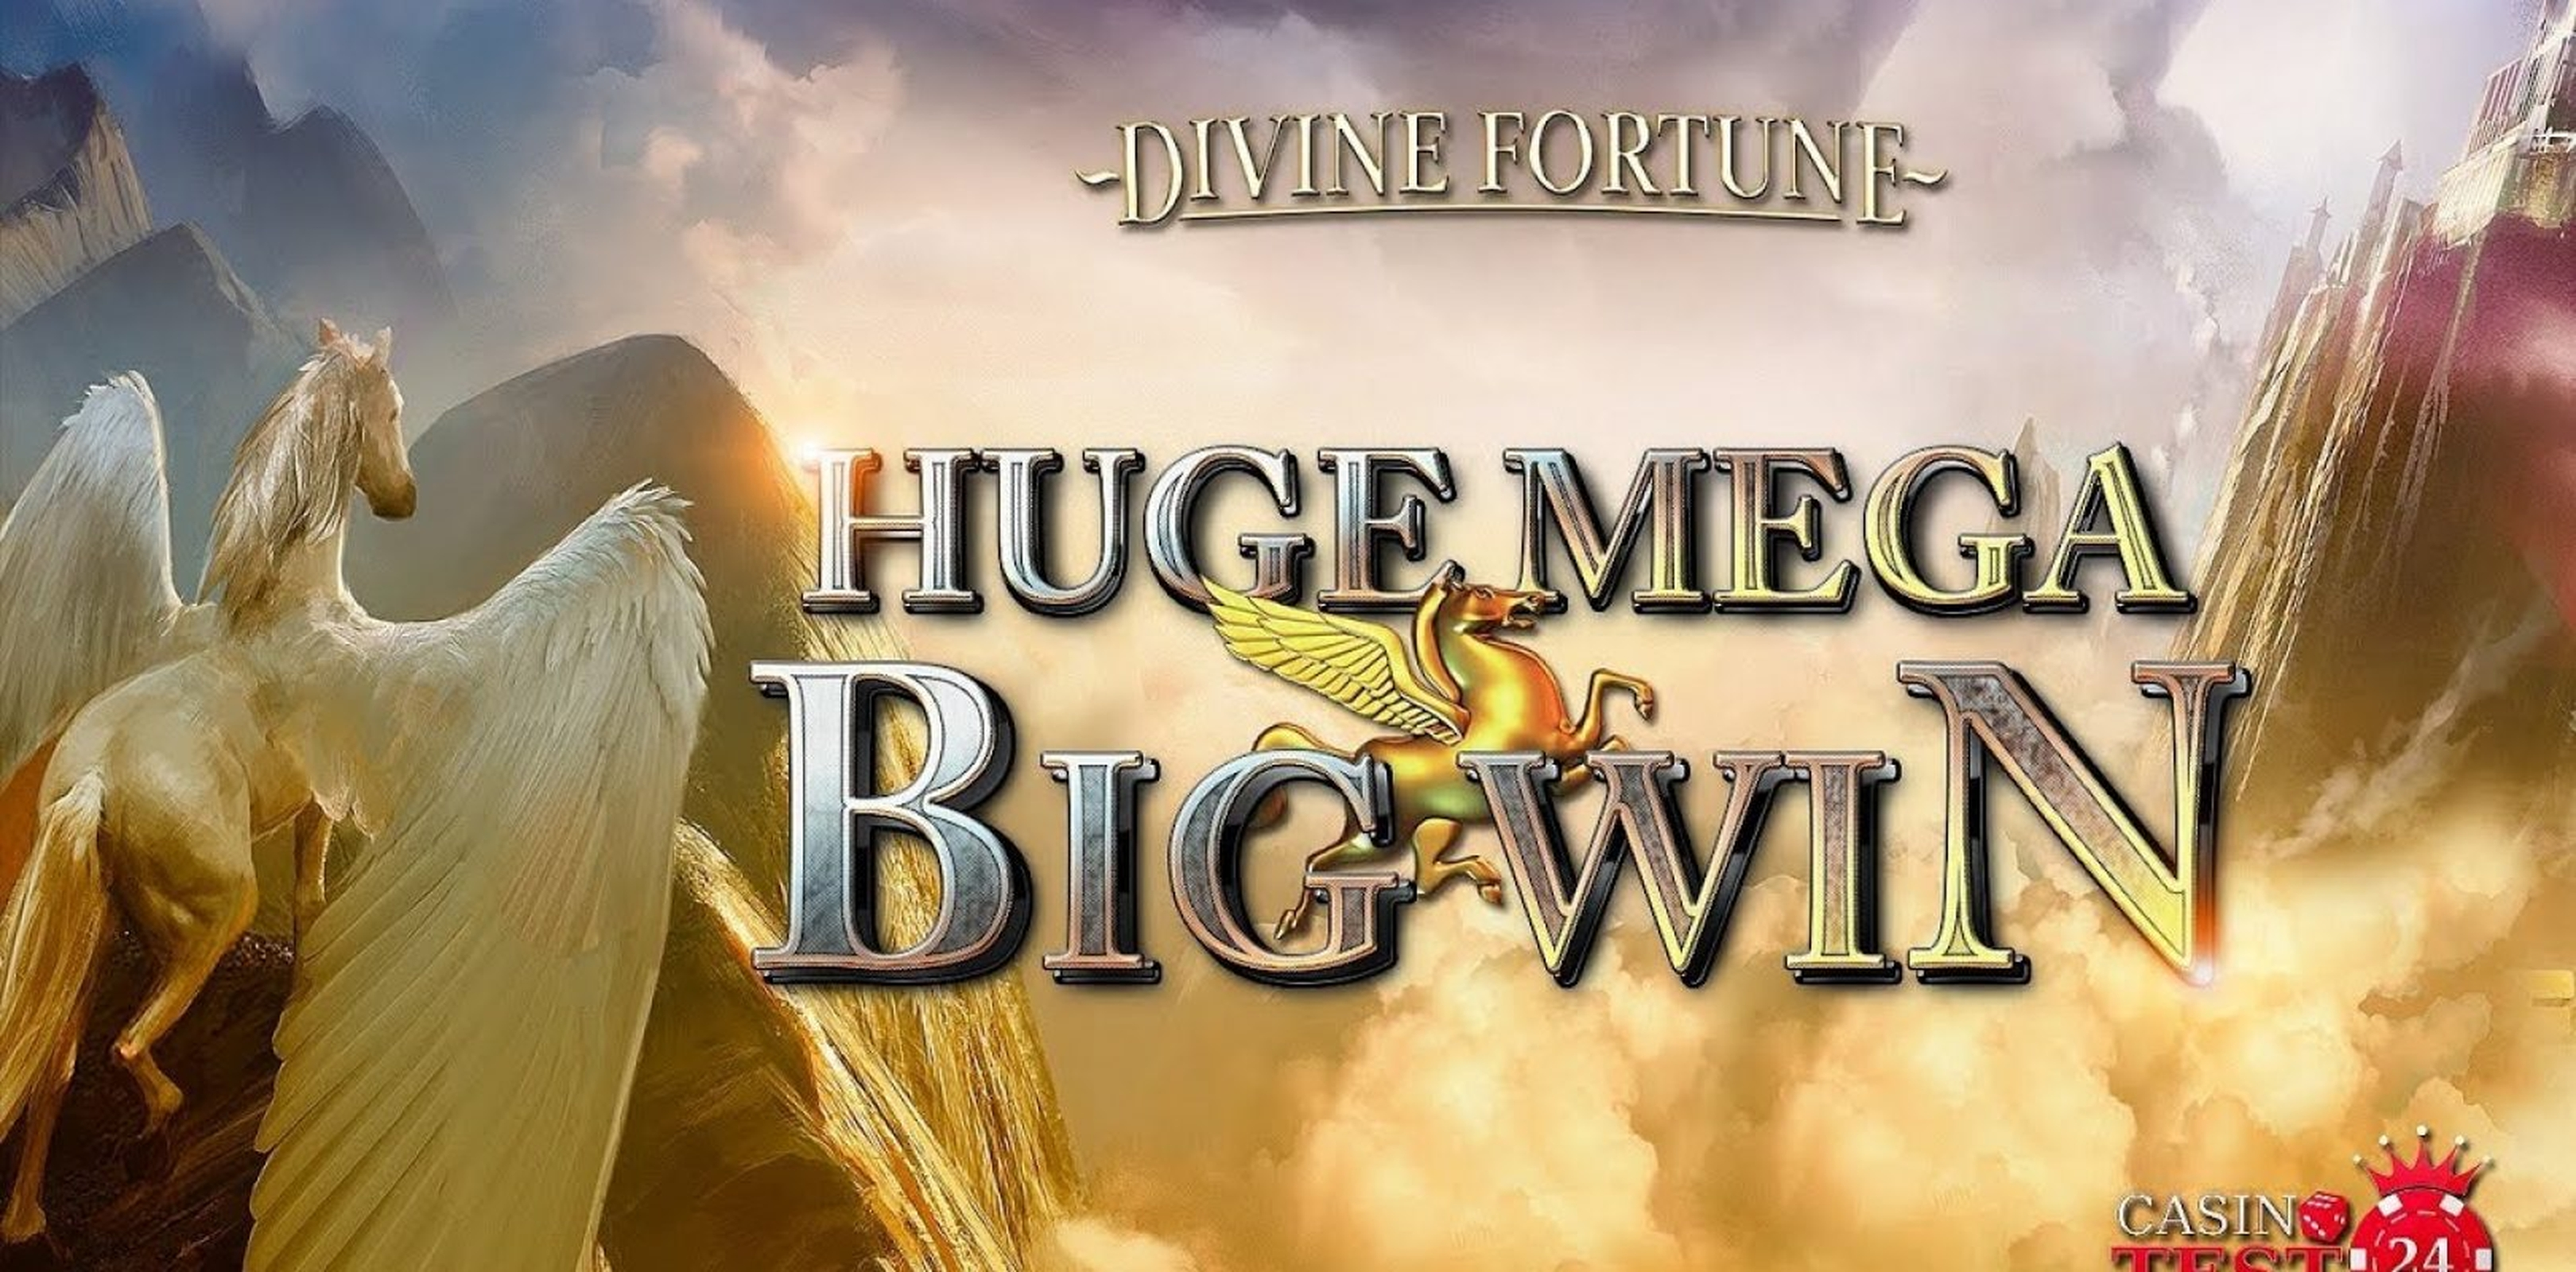 The Divine Fortune Online Slot Demo Game by NetEnt